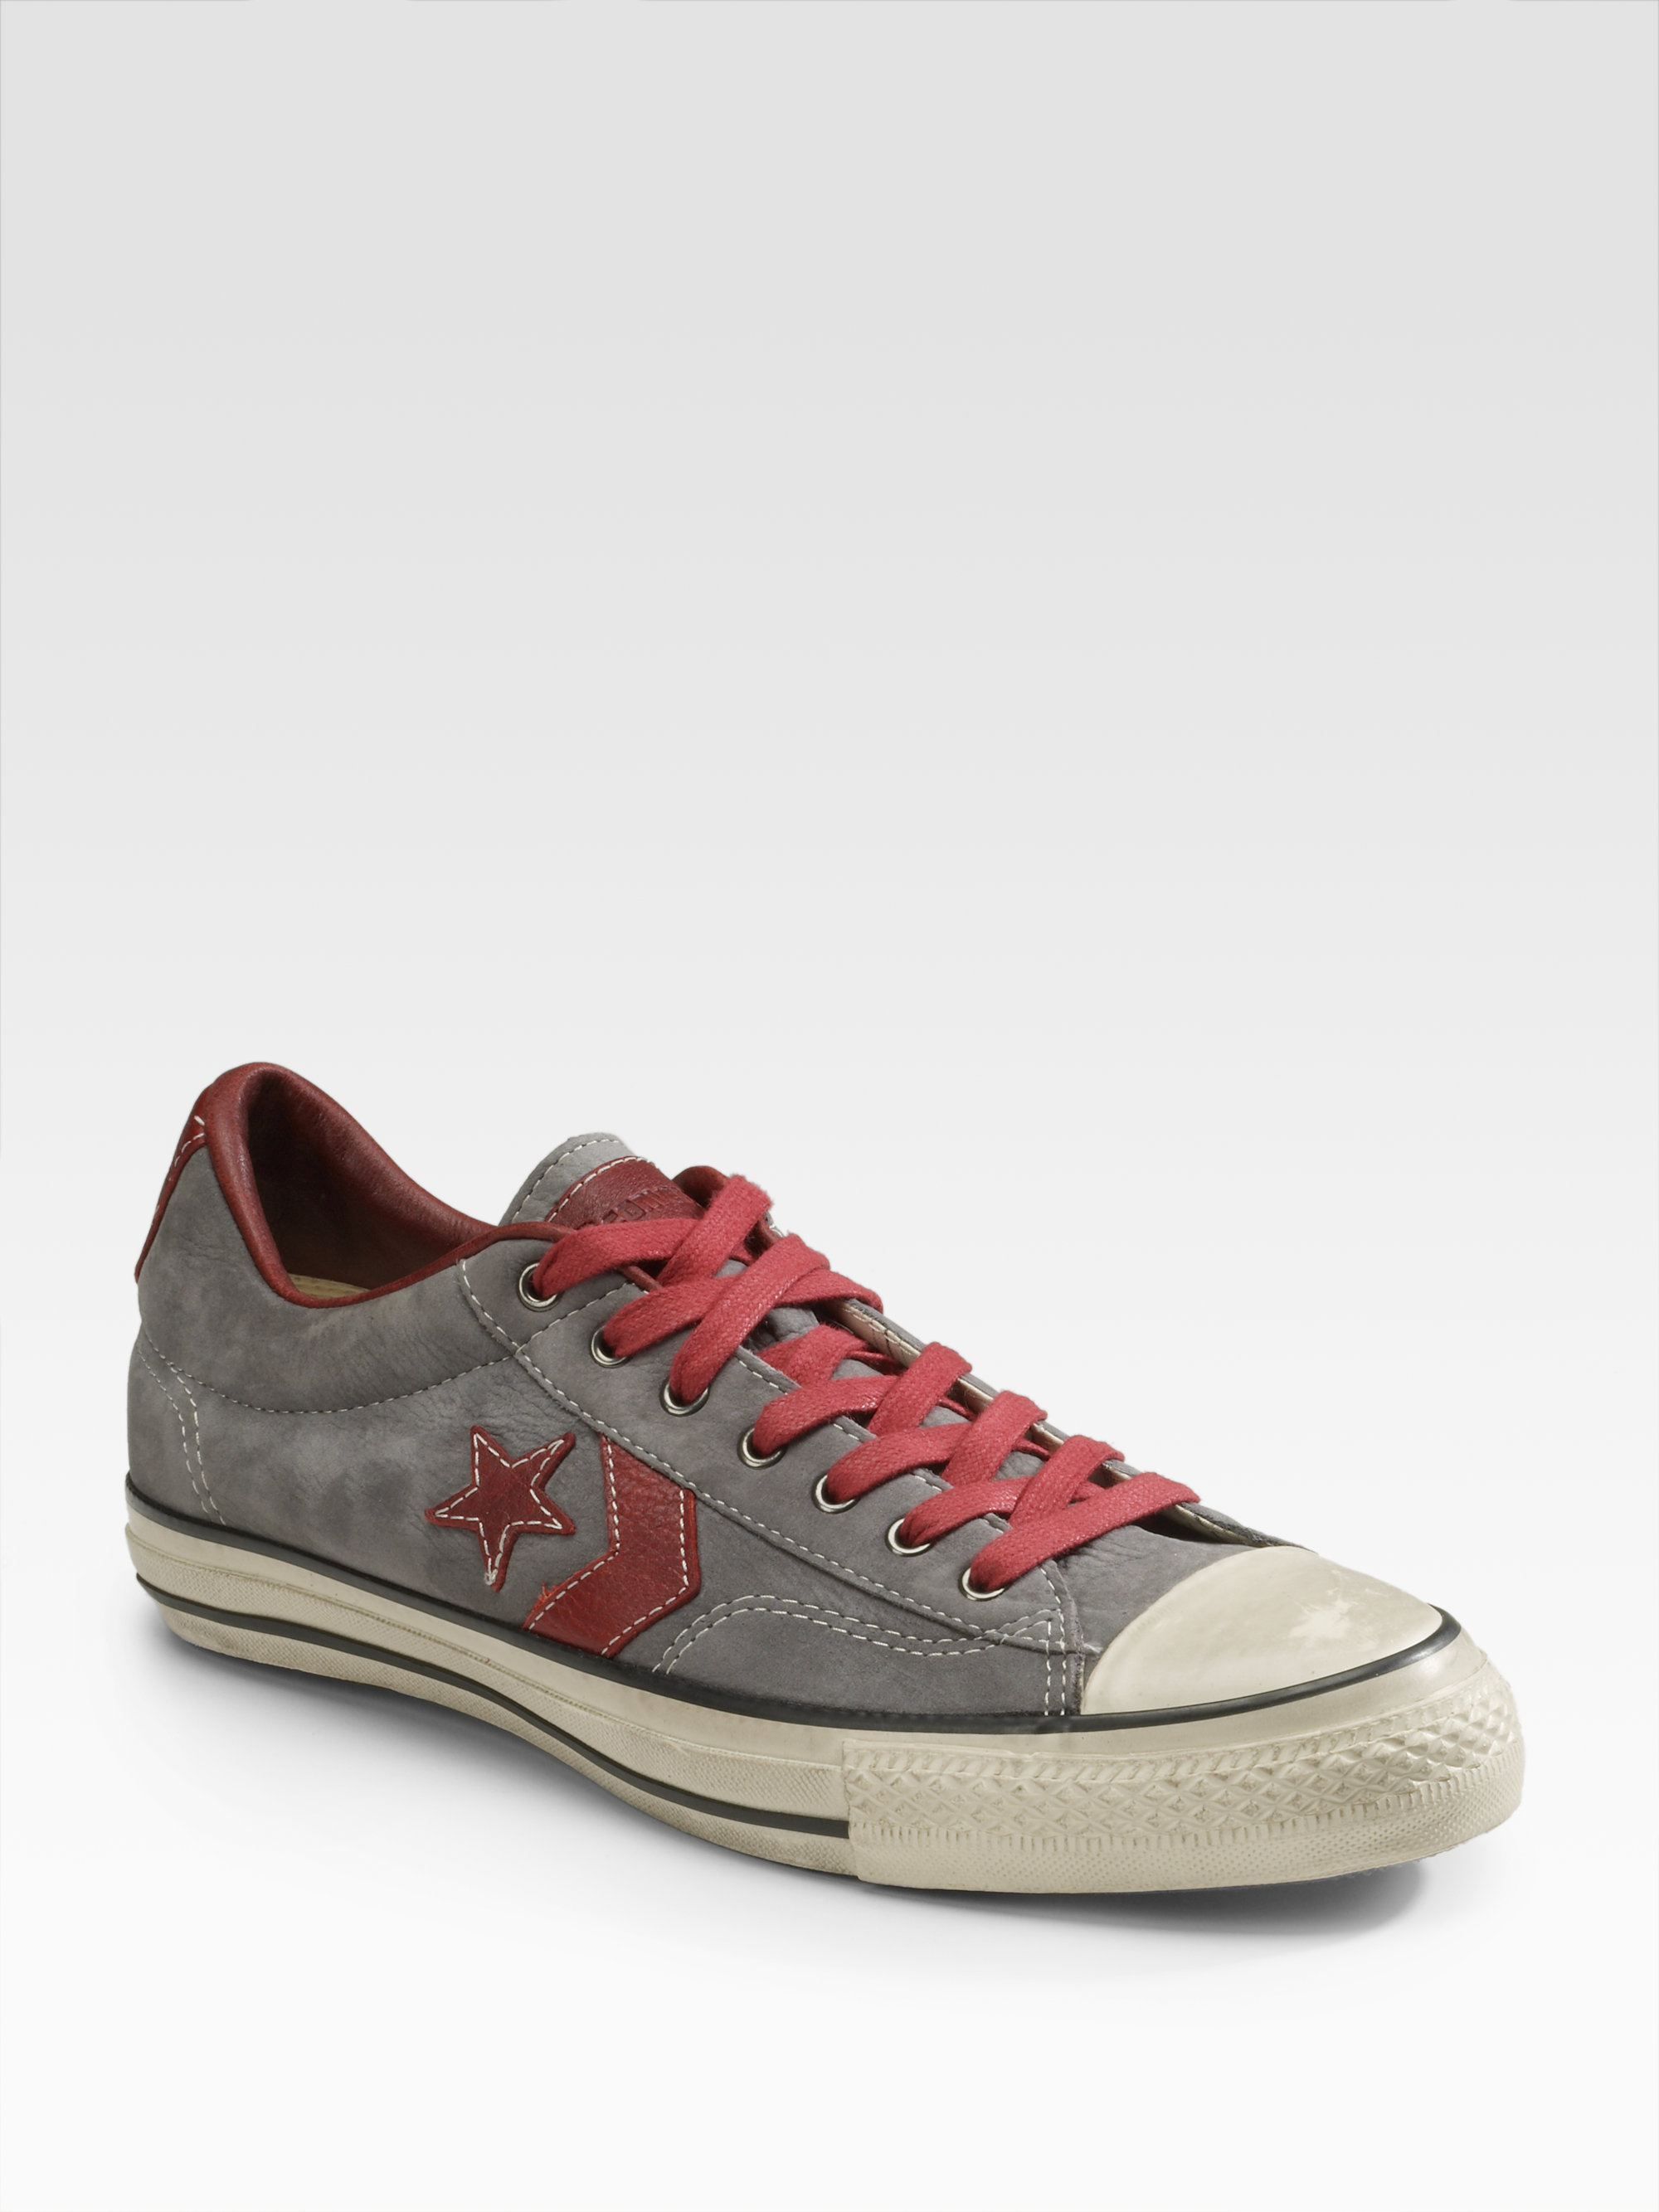 Find john varvatos converse at Macy's Macy's Presents: The Edit - A curated mix of fashion and inspiration Check It Out Free Shipping with $25 purchase + Free Store Pickup.